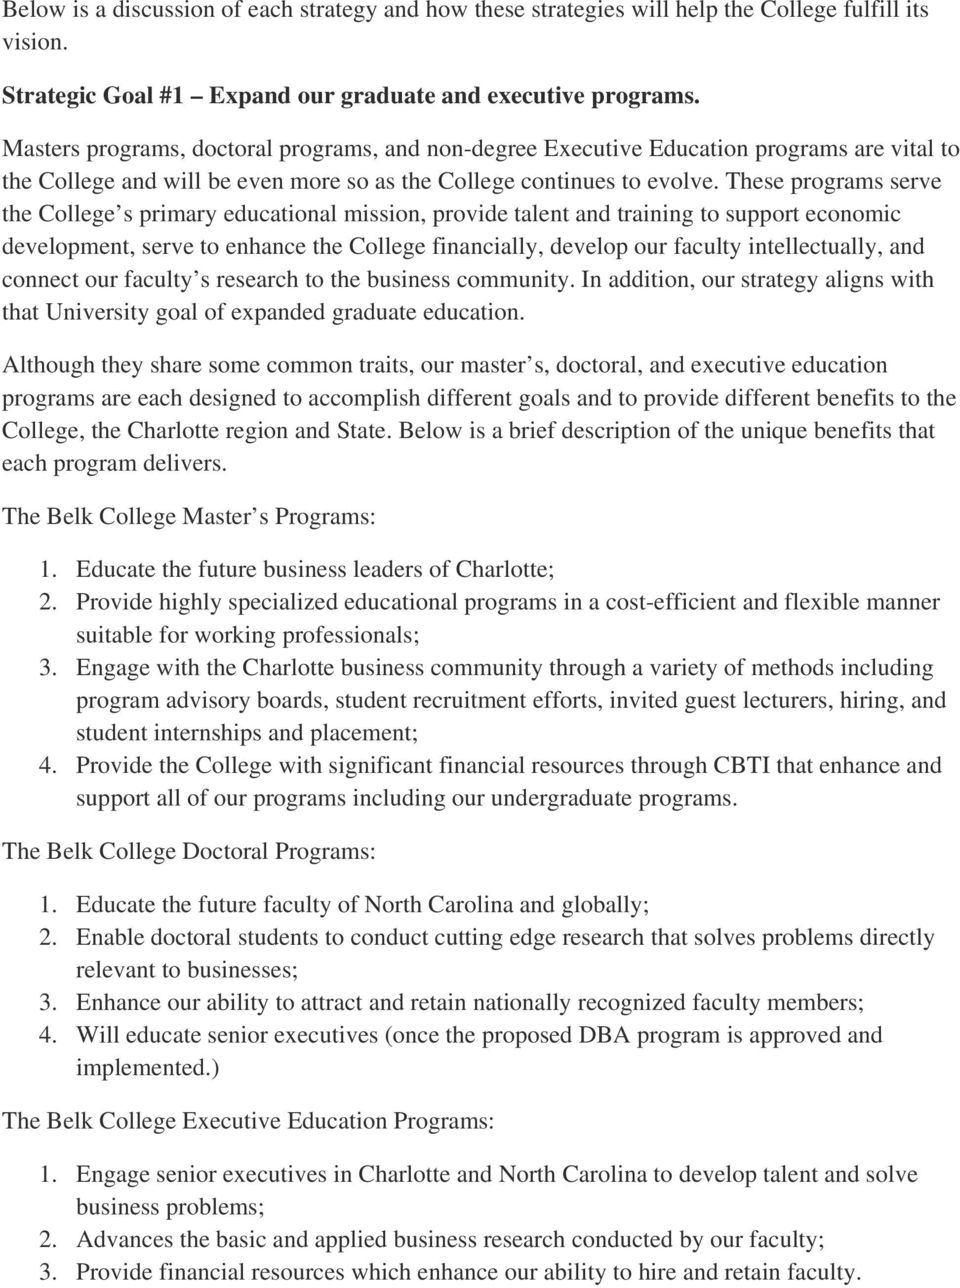 These programs serve the College s primary educational mission, provide talent and training to support economic development, serve to enhance the College financially, develop our faculty